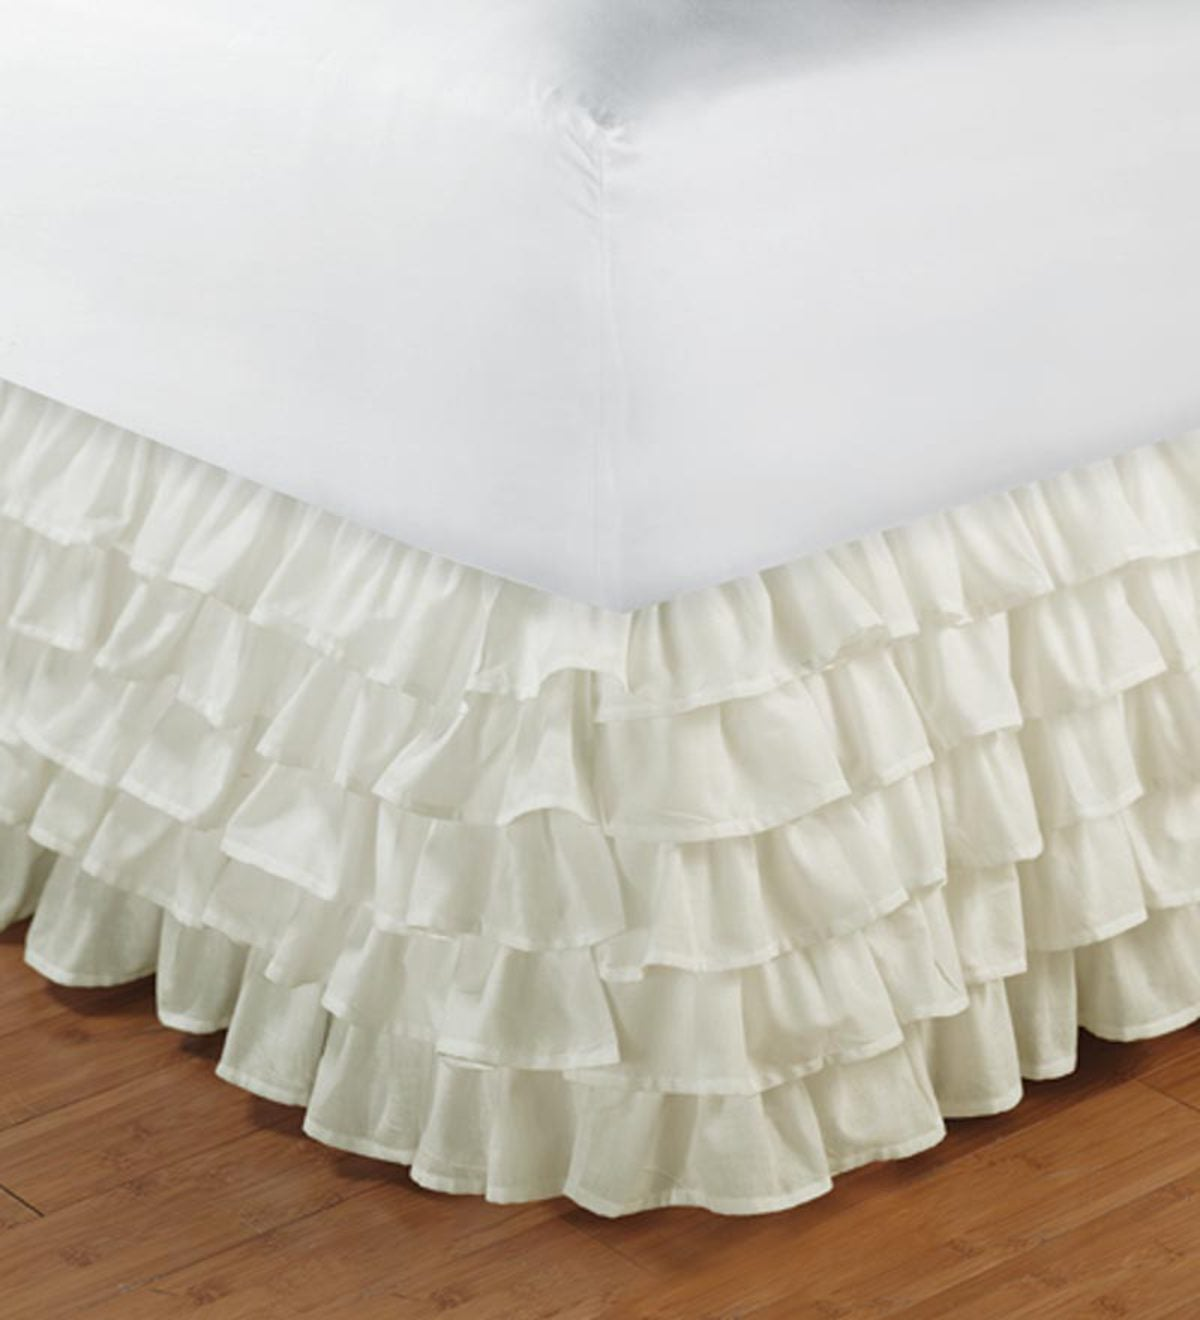 King Bed Skirt with Ruffles - Ivory